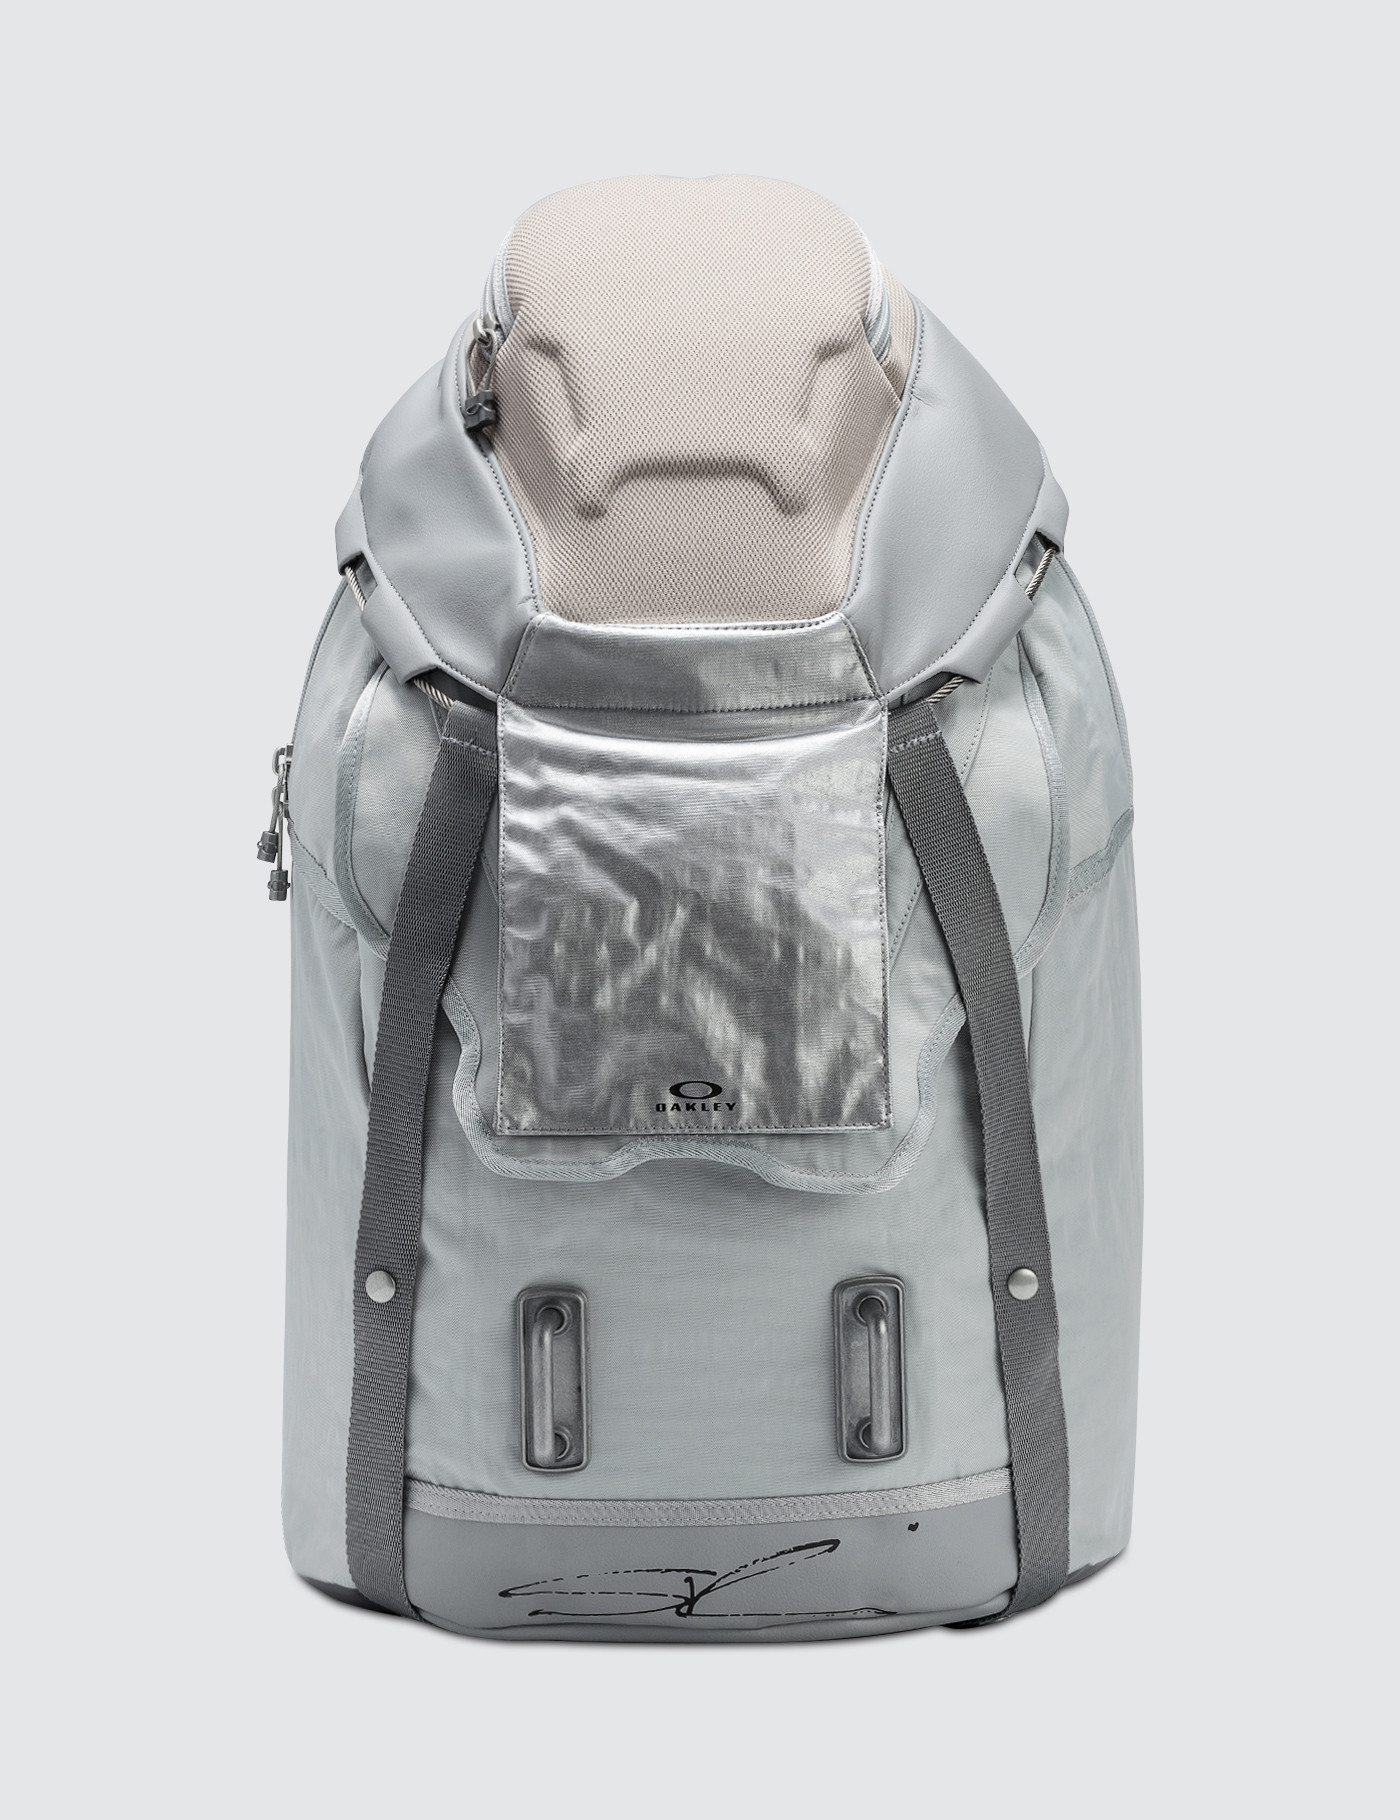 68d9f7700e Buy Original Oakley by Samuel Ross Backpack Metal at Indonesia ...